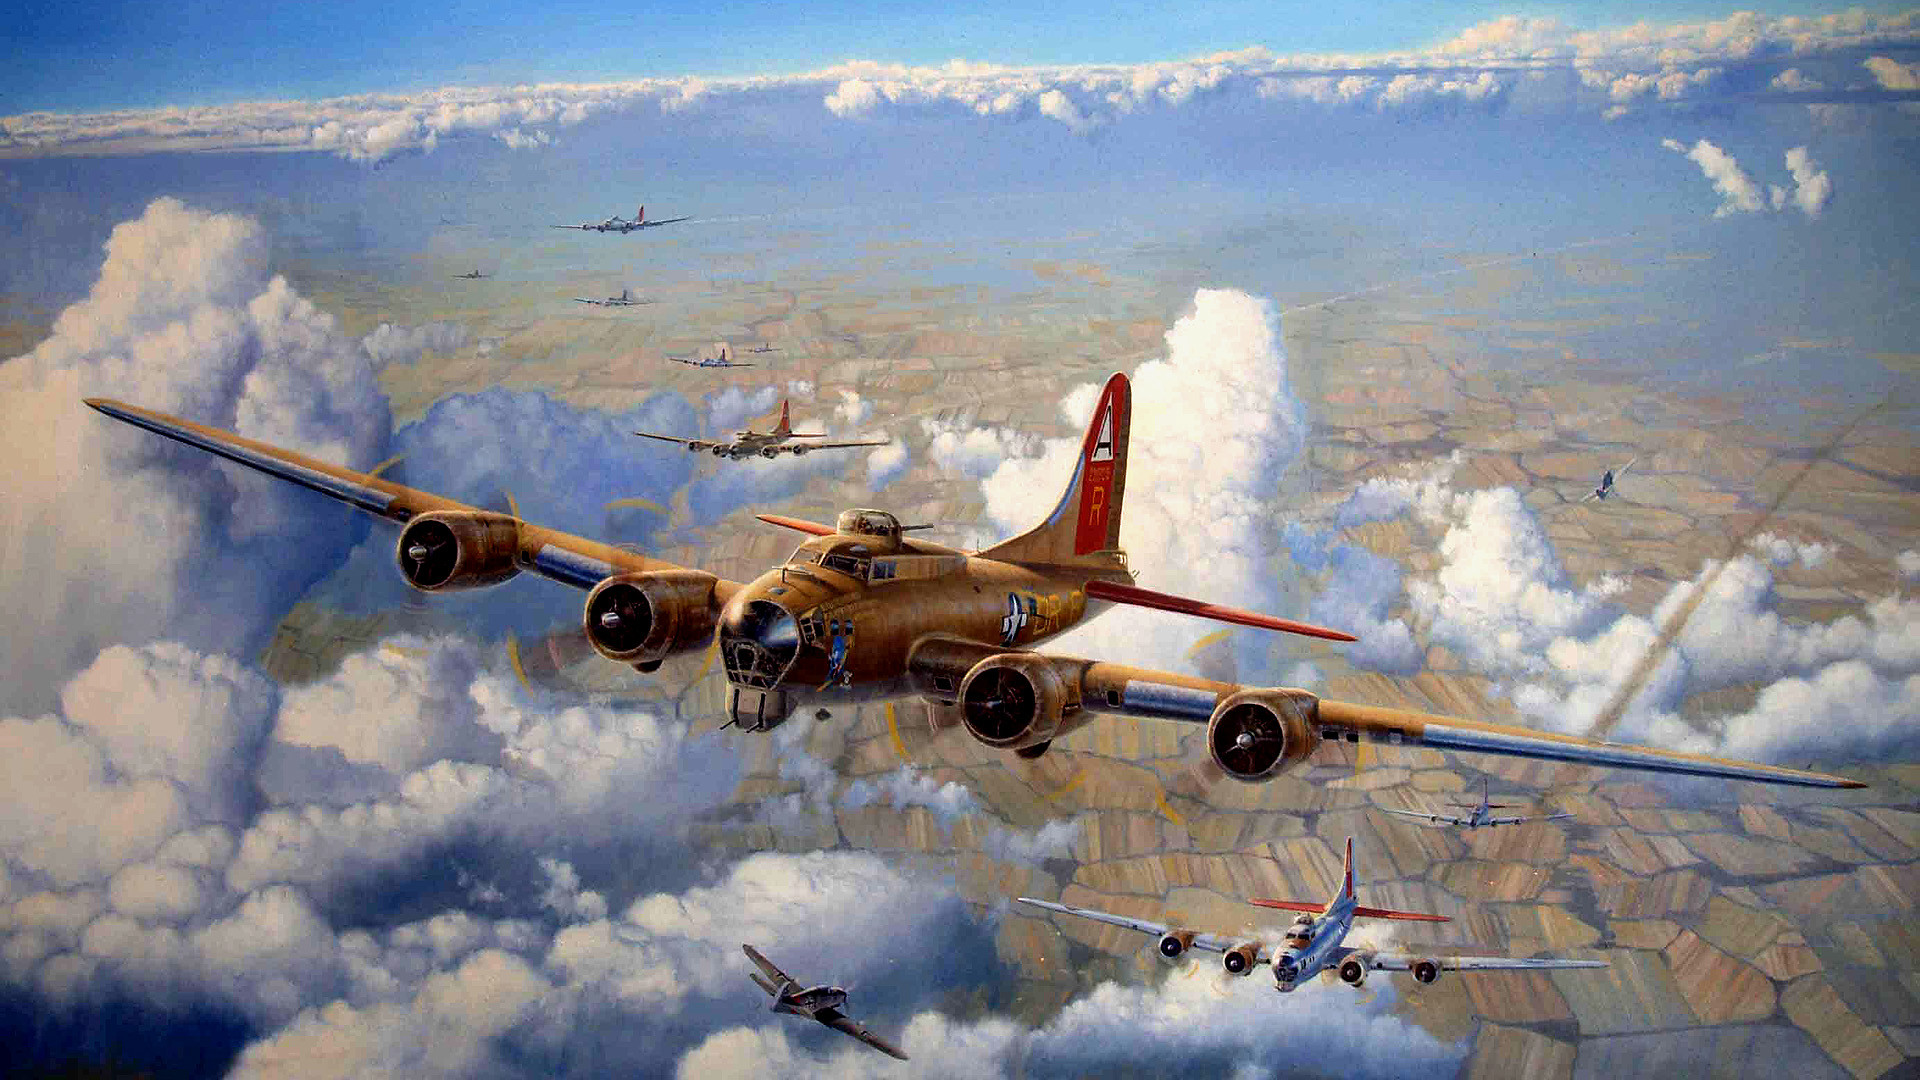 B 17 Flying Fortress Wallpaper 73 images 1920x1080